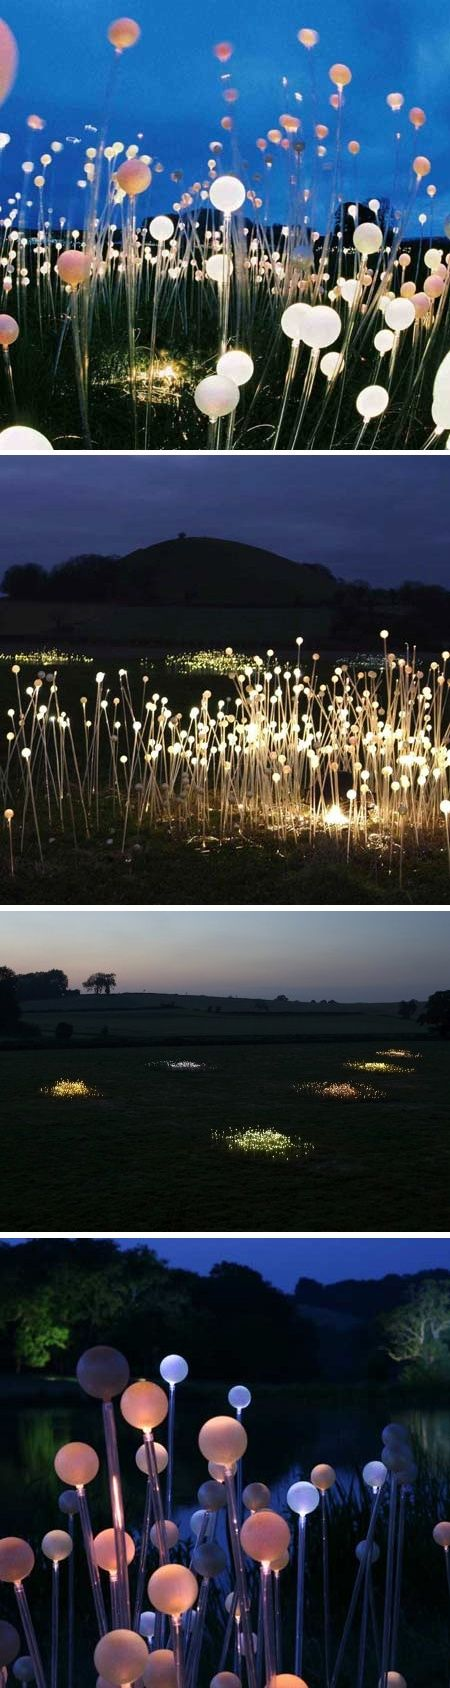 balloons and glowsticks. make your own fairylights!